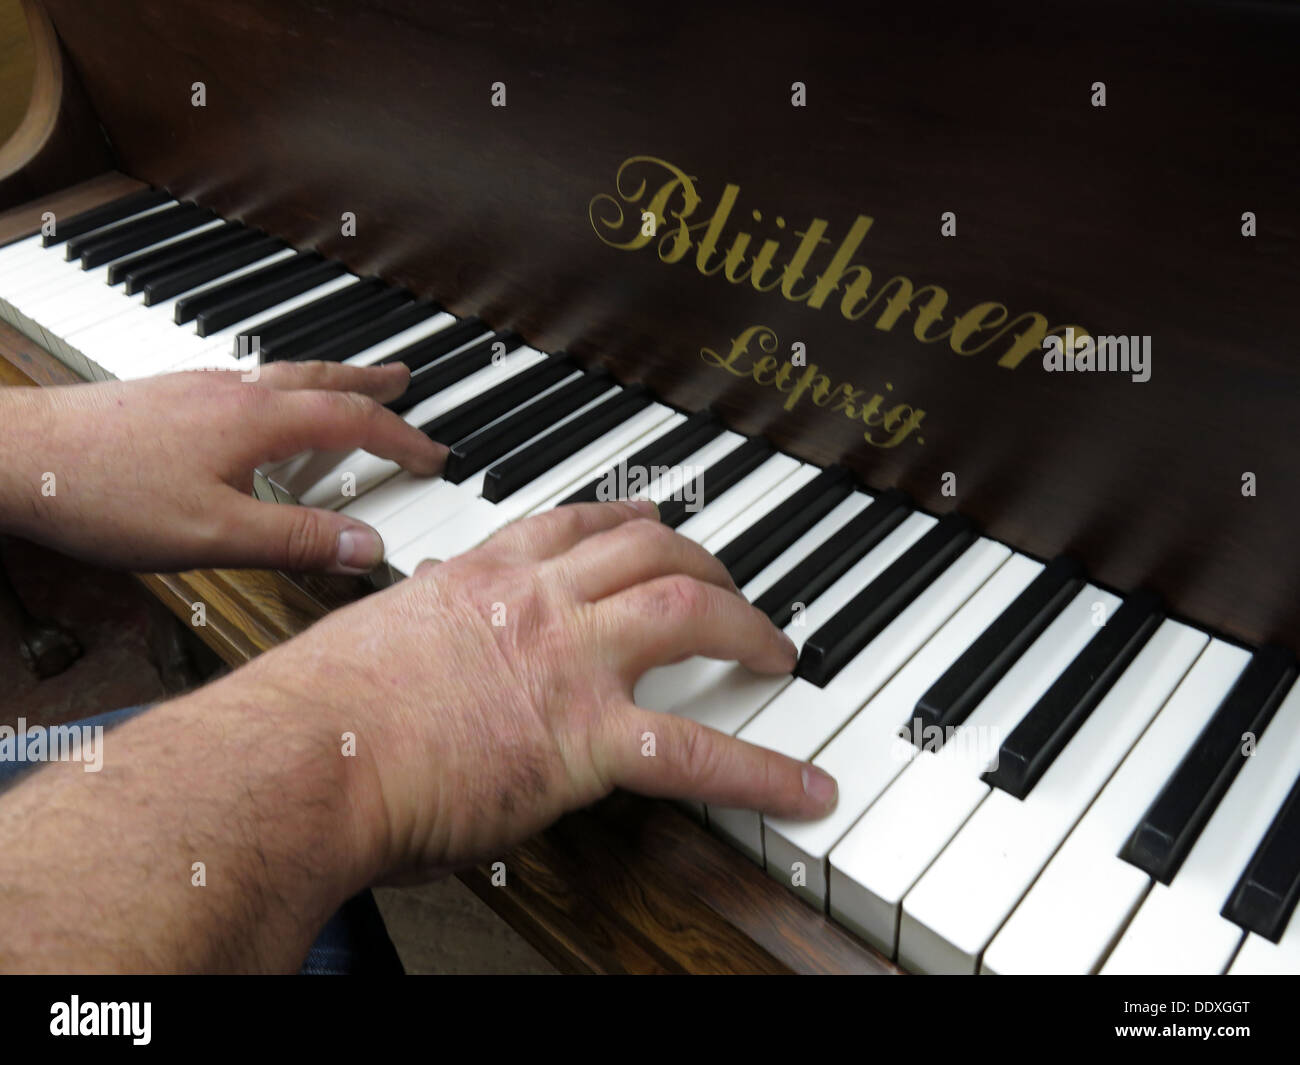 quality,keys,ivory,black,hand,hands,player,human,hand,fingers,music,musician,Playing a piano,Playing a,Bluthner Piano,human hands,quality piano,GoTonySmith,@HotpixUK,adult,adults,angle,arts,background,black,close-up,color,culture,entertainment,finger,focus,hand,hands,high,hobbies,human,ideas,in,instrument,key,keyboard,male,males,man,men,music,musical,musician,one,only,ornate,part,performance,person,photography,piano,playing,reflection,row,selective,shot,skill,Deutsche,Deutschland,Buy Pictures of,Buy Images Of,Images of a piano player,Stock Images